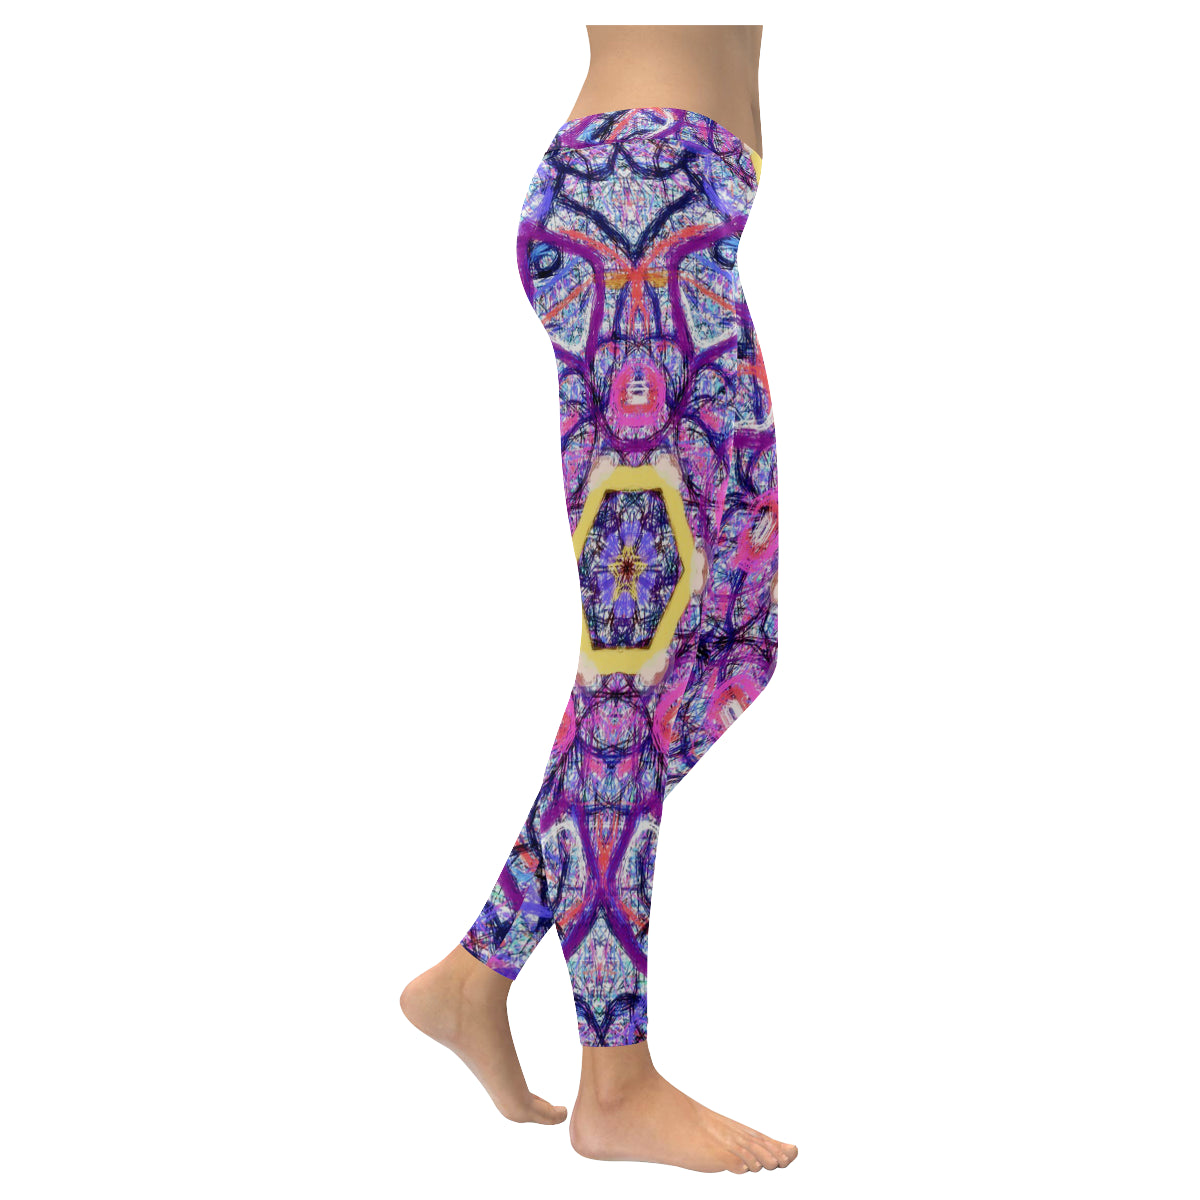 Thleudron Royalty New Low Rise Leggings (Flatlock Stitch) (Model L07) - Thleudron